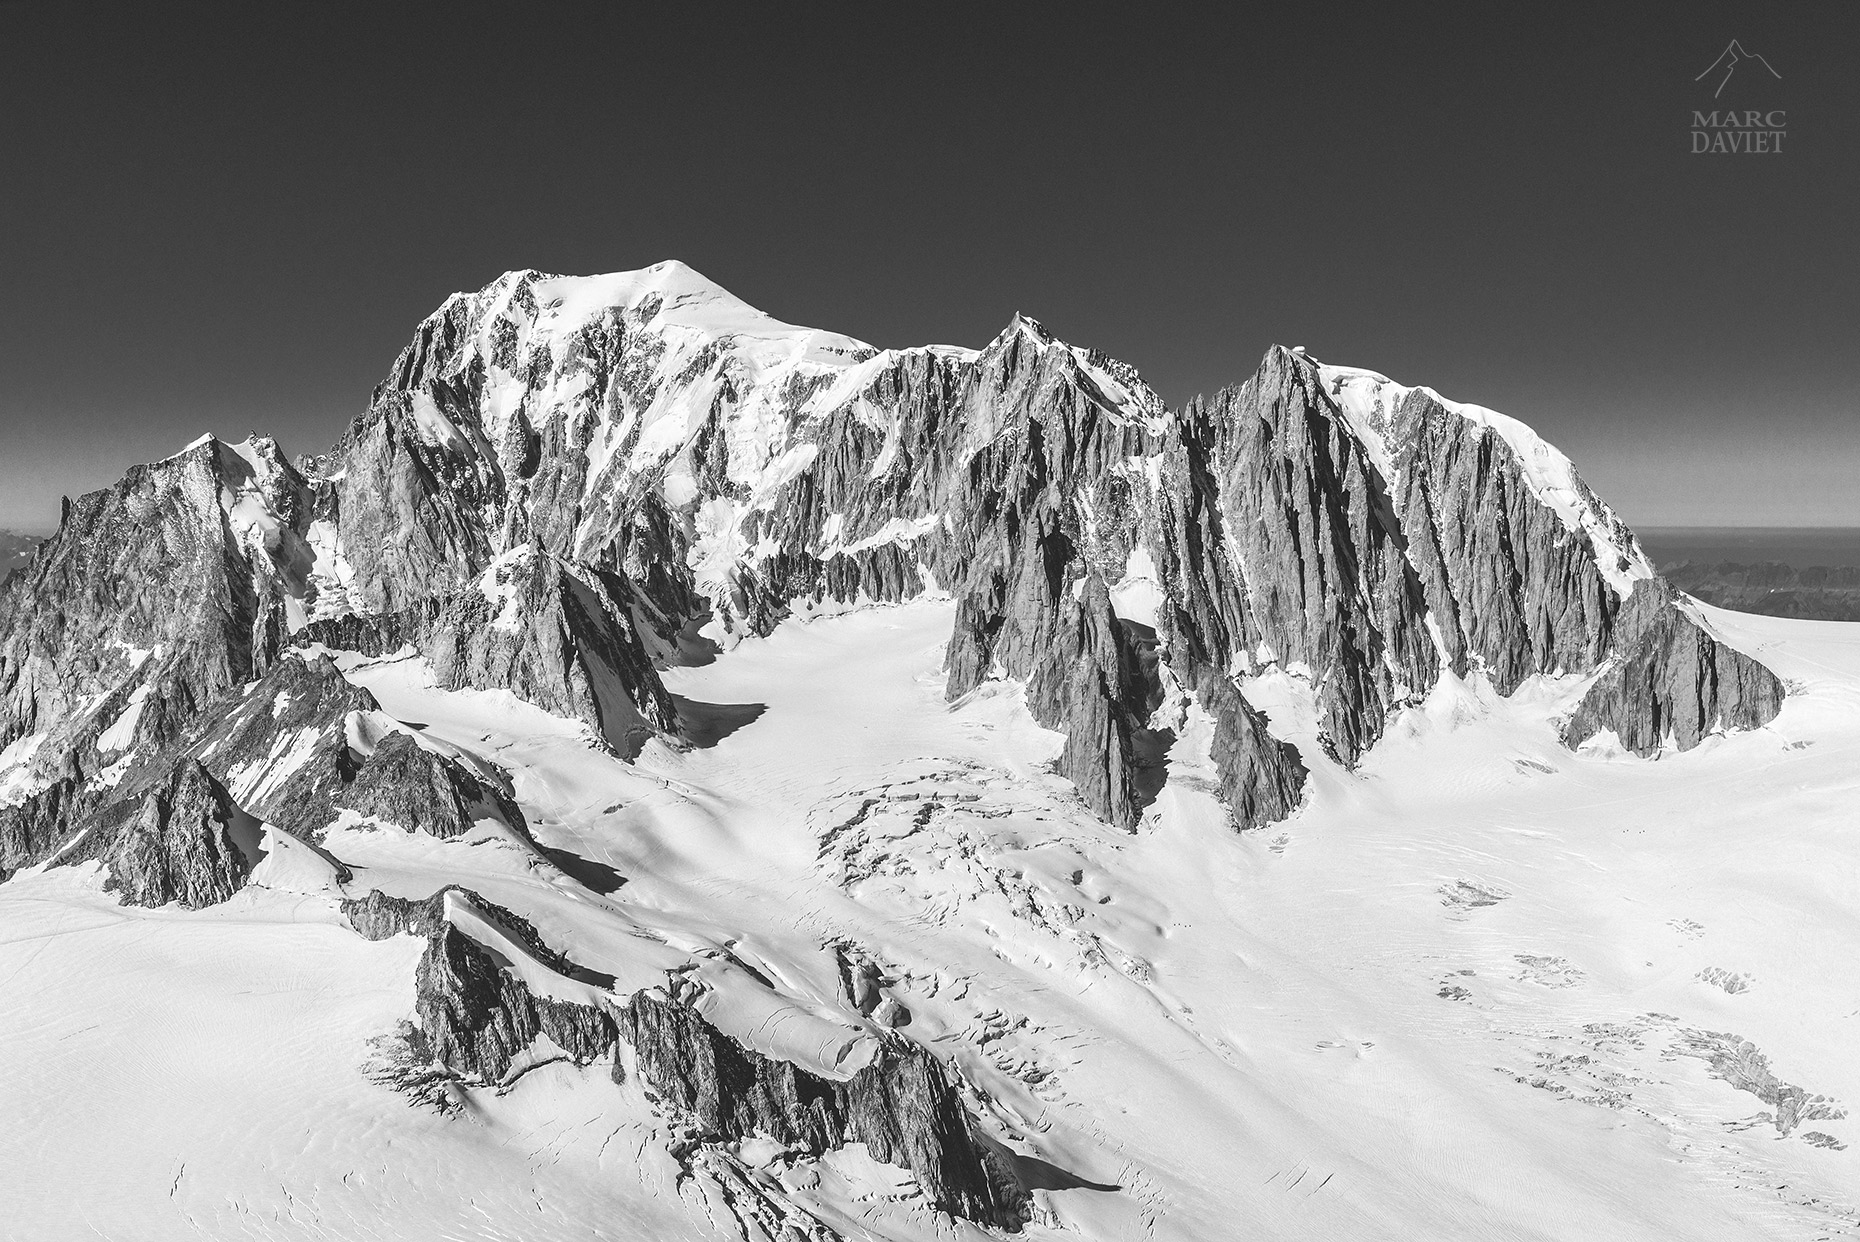 Massif of Mont-Blanc - Chamonix - Marc Daviet Photography